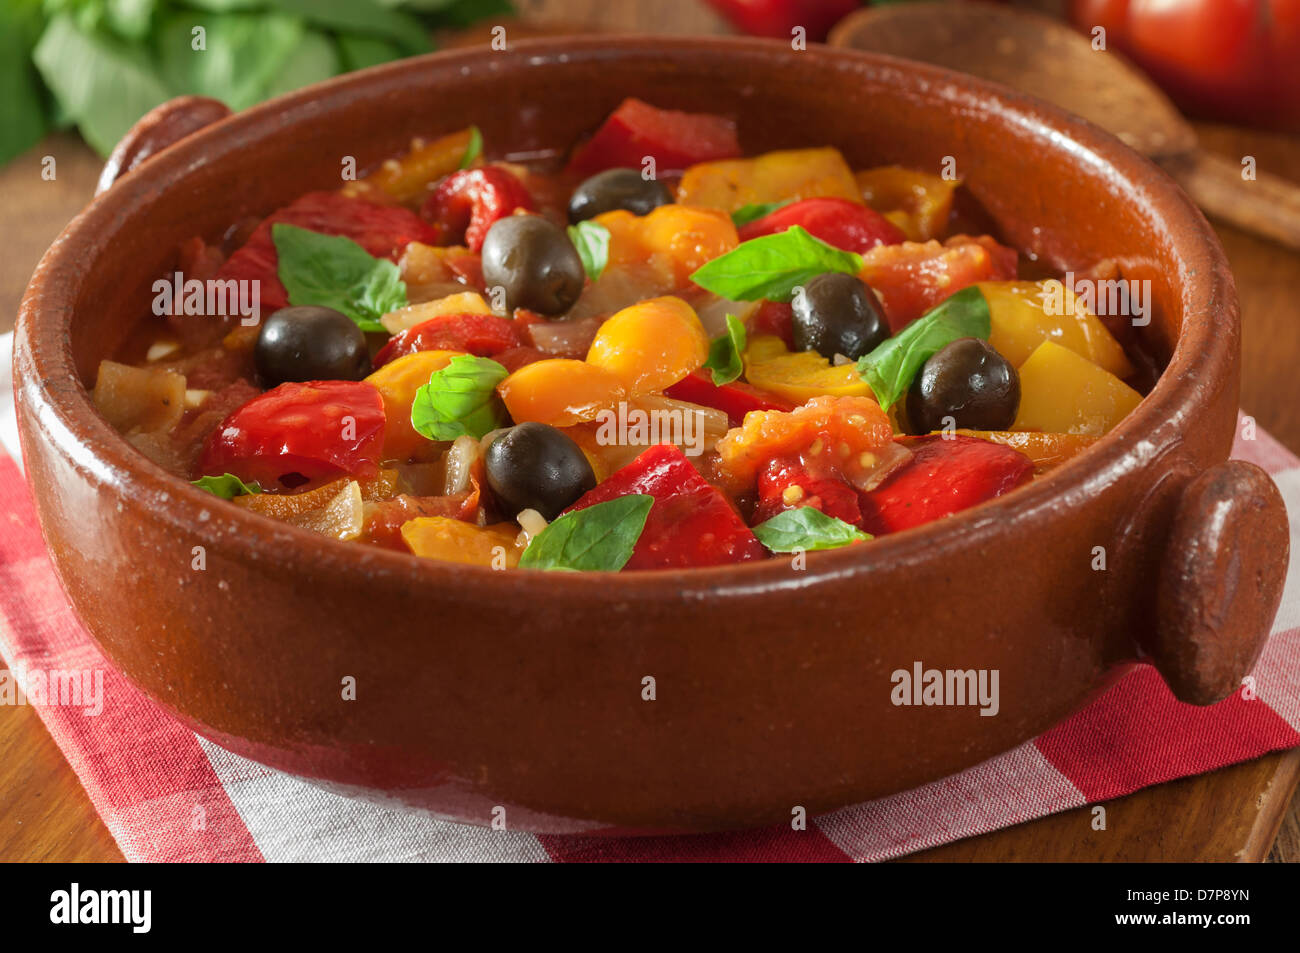 Peperonata poivre italien Italie ragoût Food Photo Stock